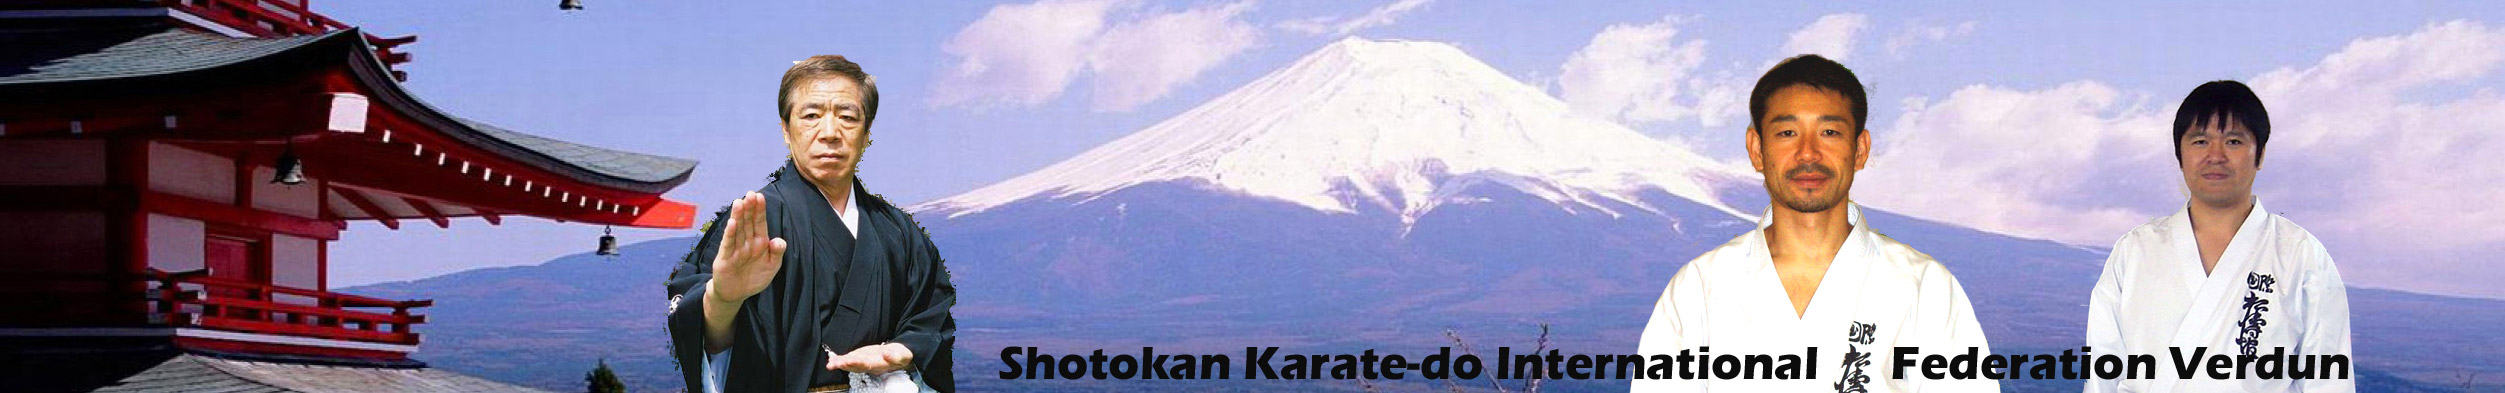 Shotokan Karate-do International Federation - Verdun